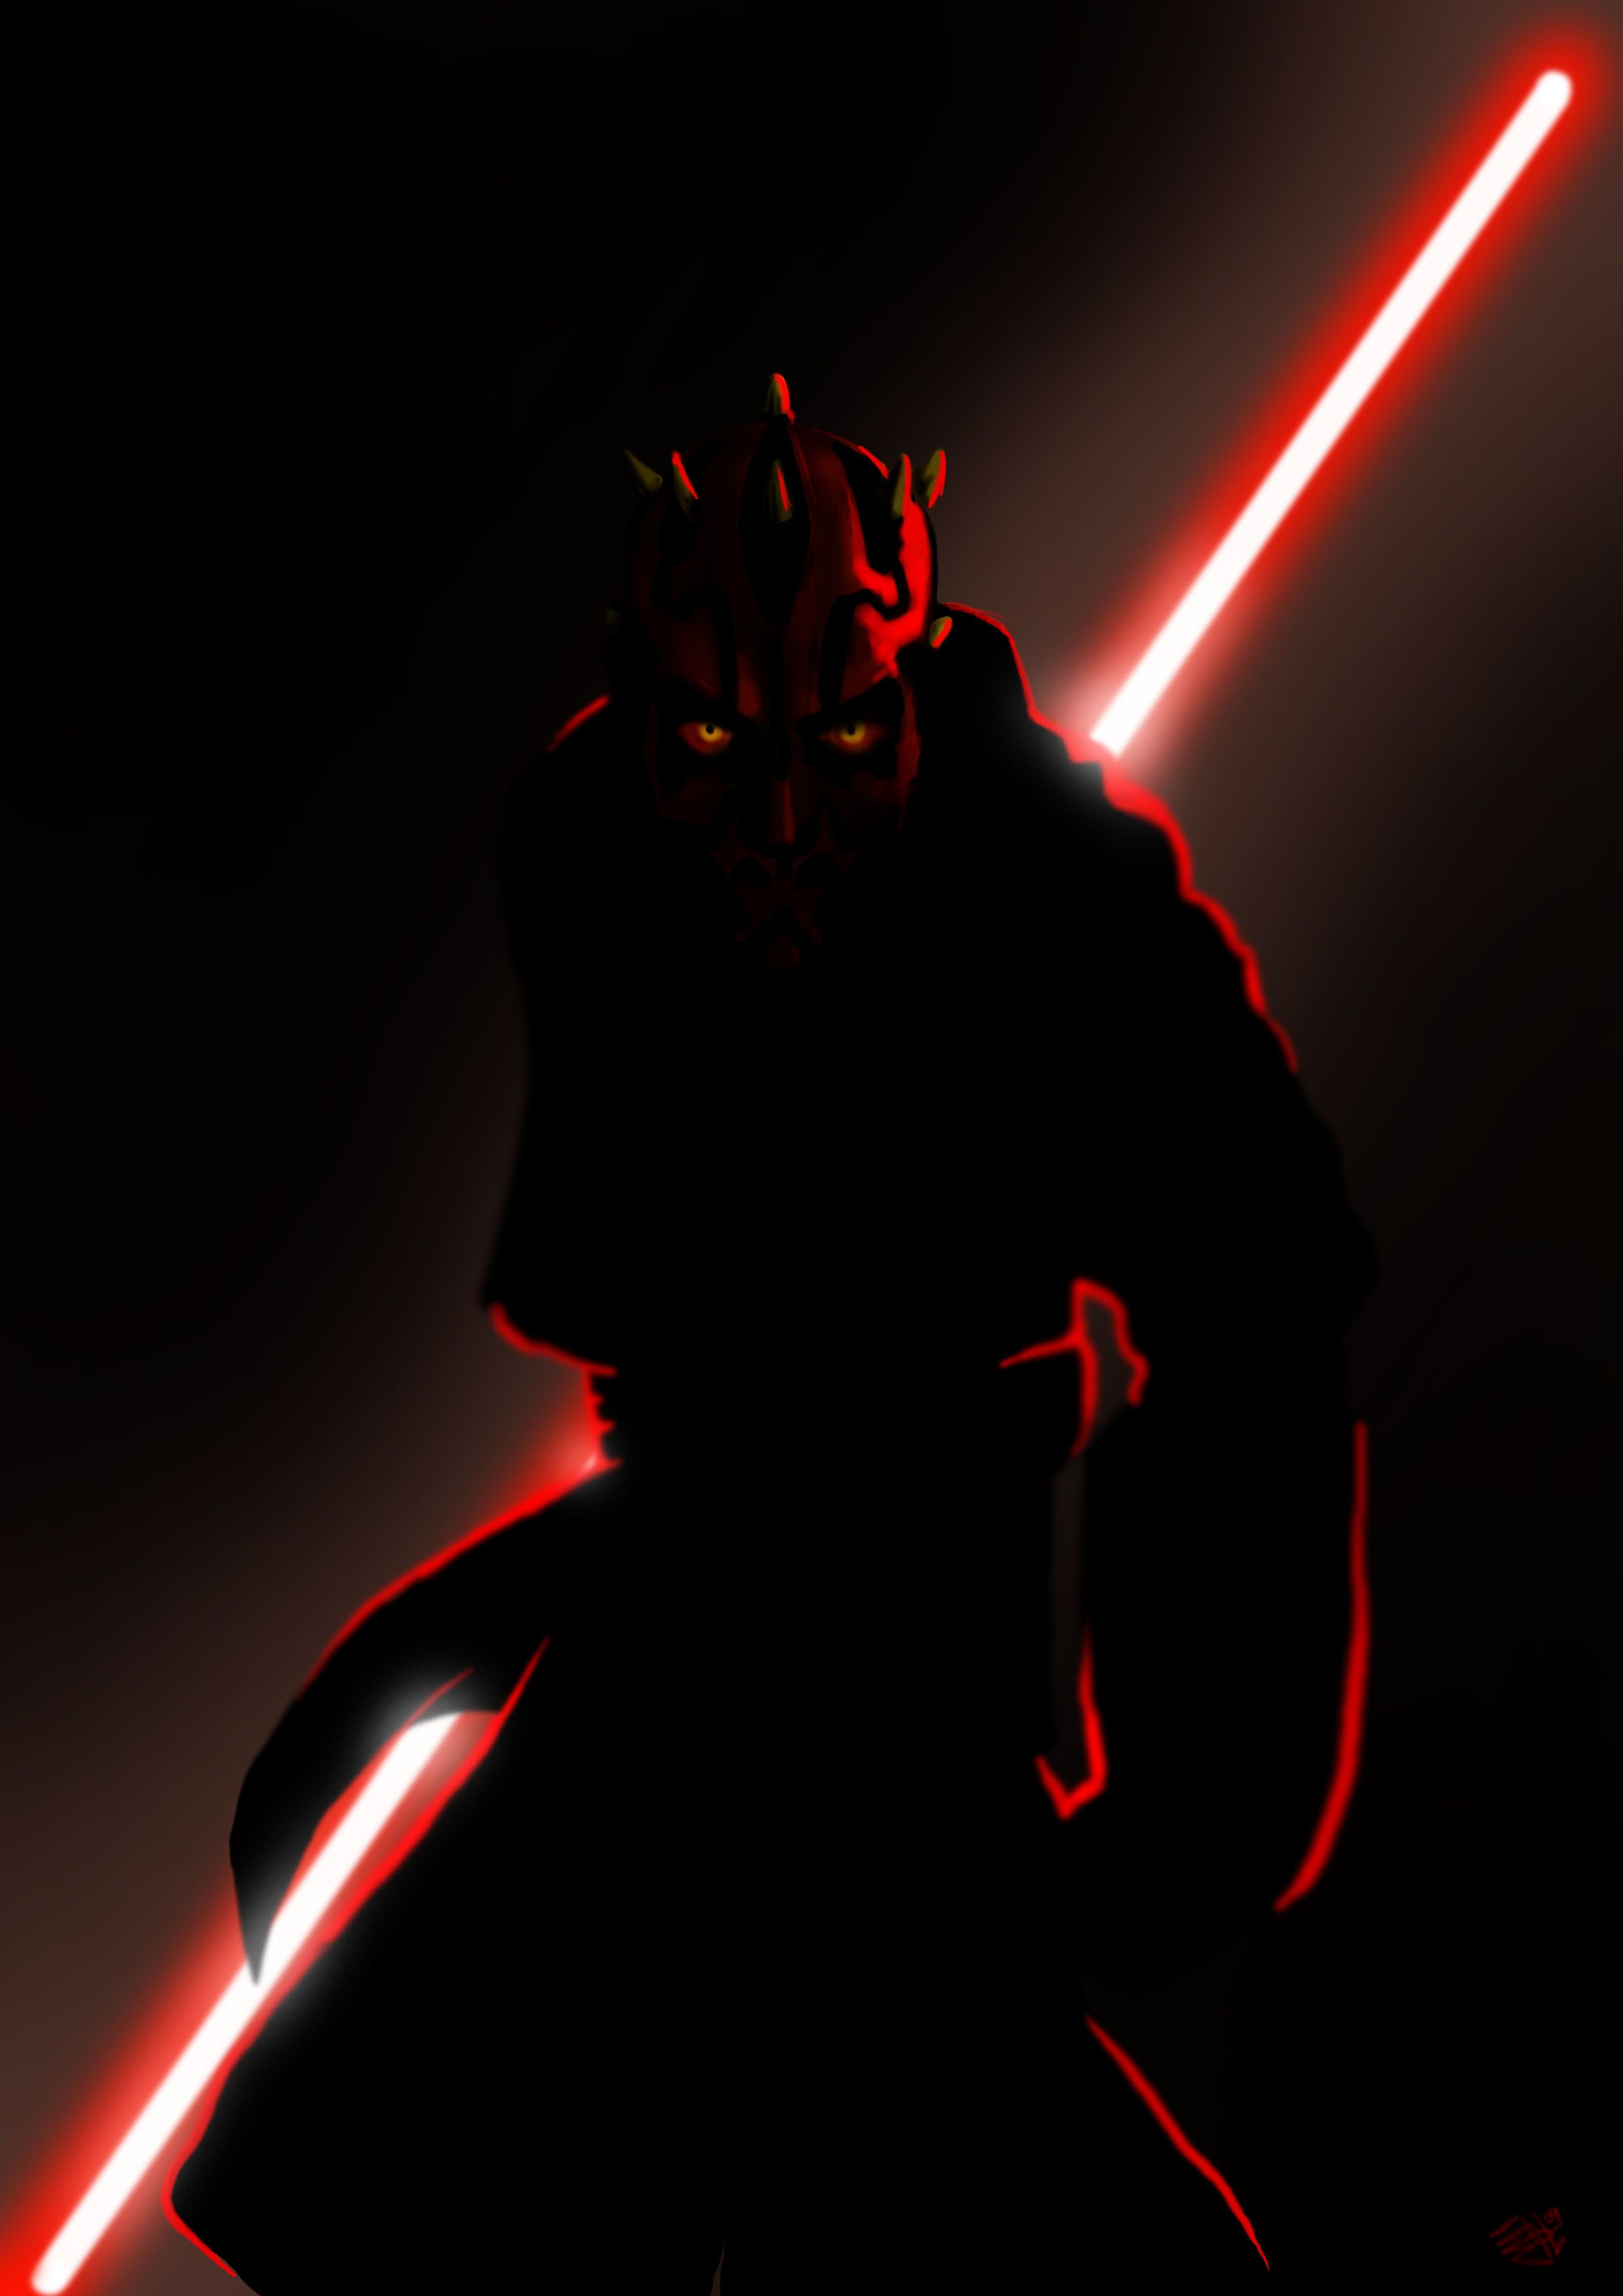 Darth Maul Iphone Wallpaper Star Wars Images Star Wars Pictures Star Wars Sith